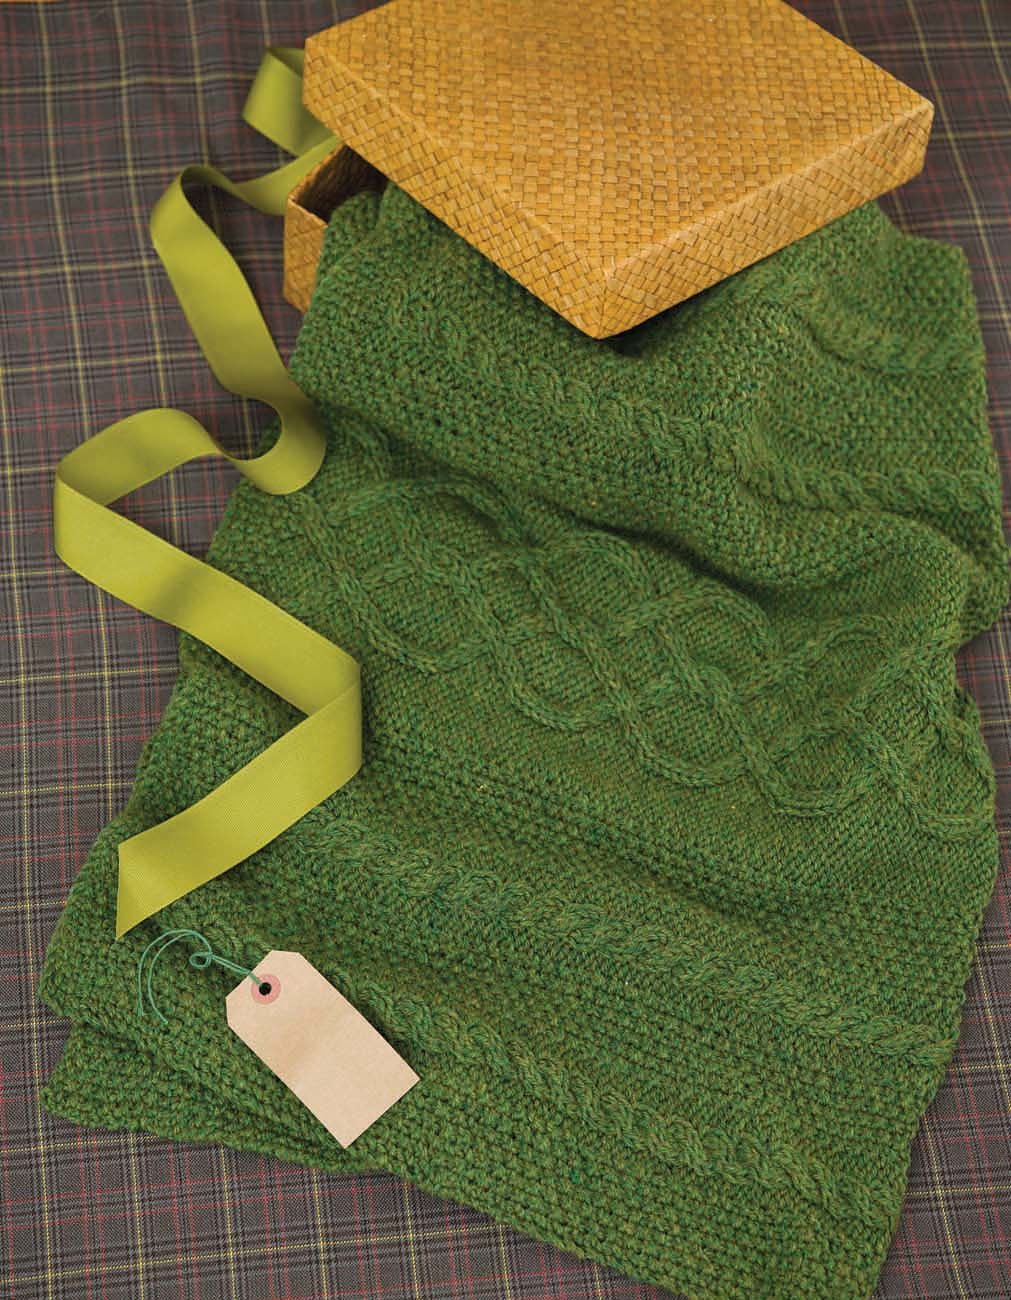 Emerald Isle Lap Blanket in Deluxe Worsted from 50 Knitted Gifts